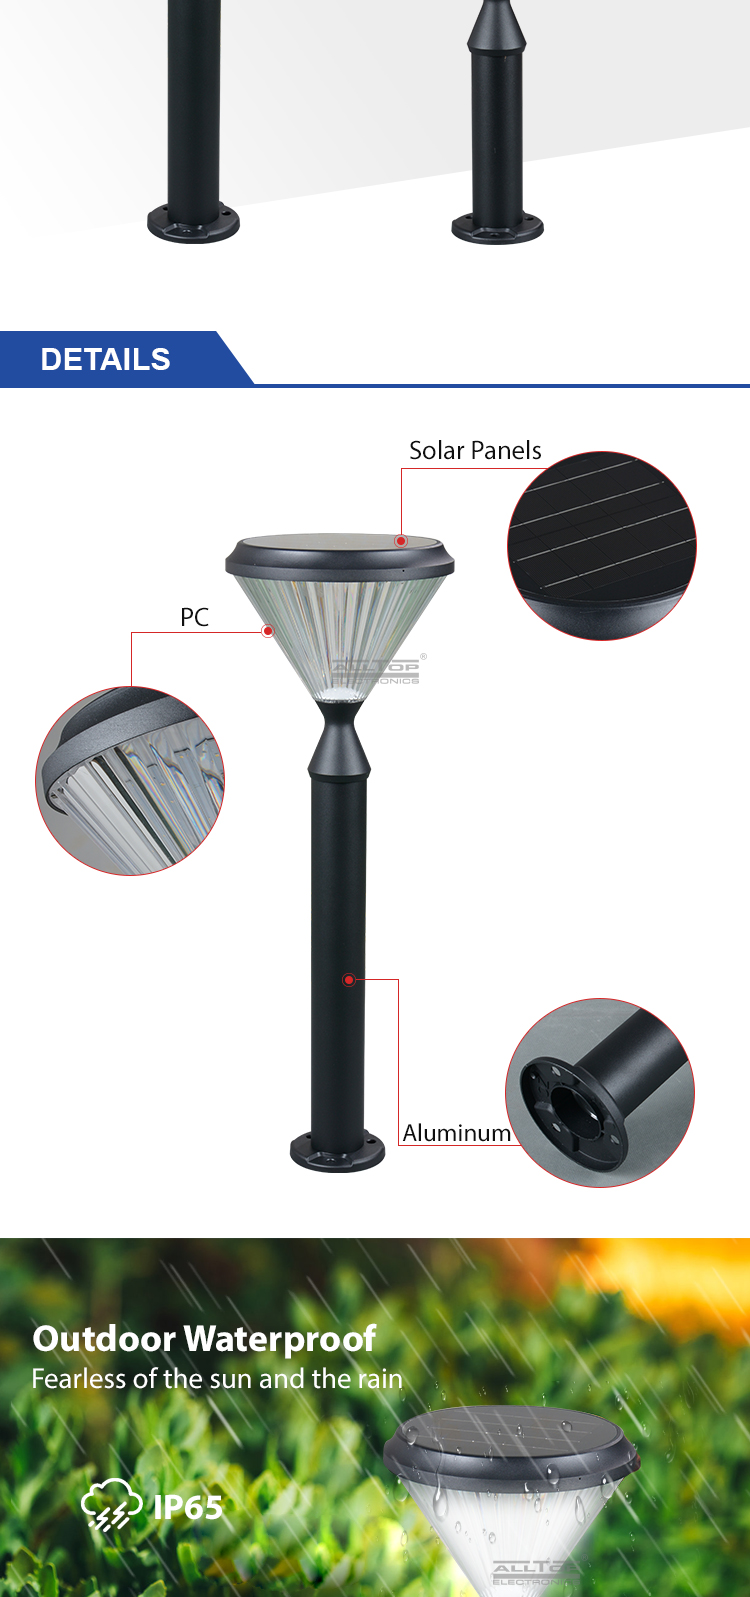 ALLTOP solar panel yard lights-13